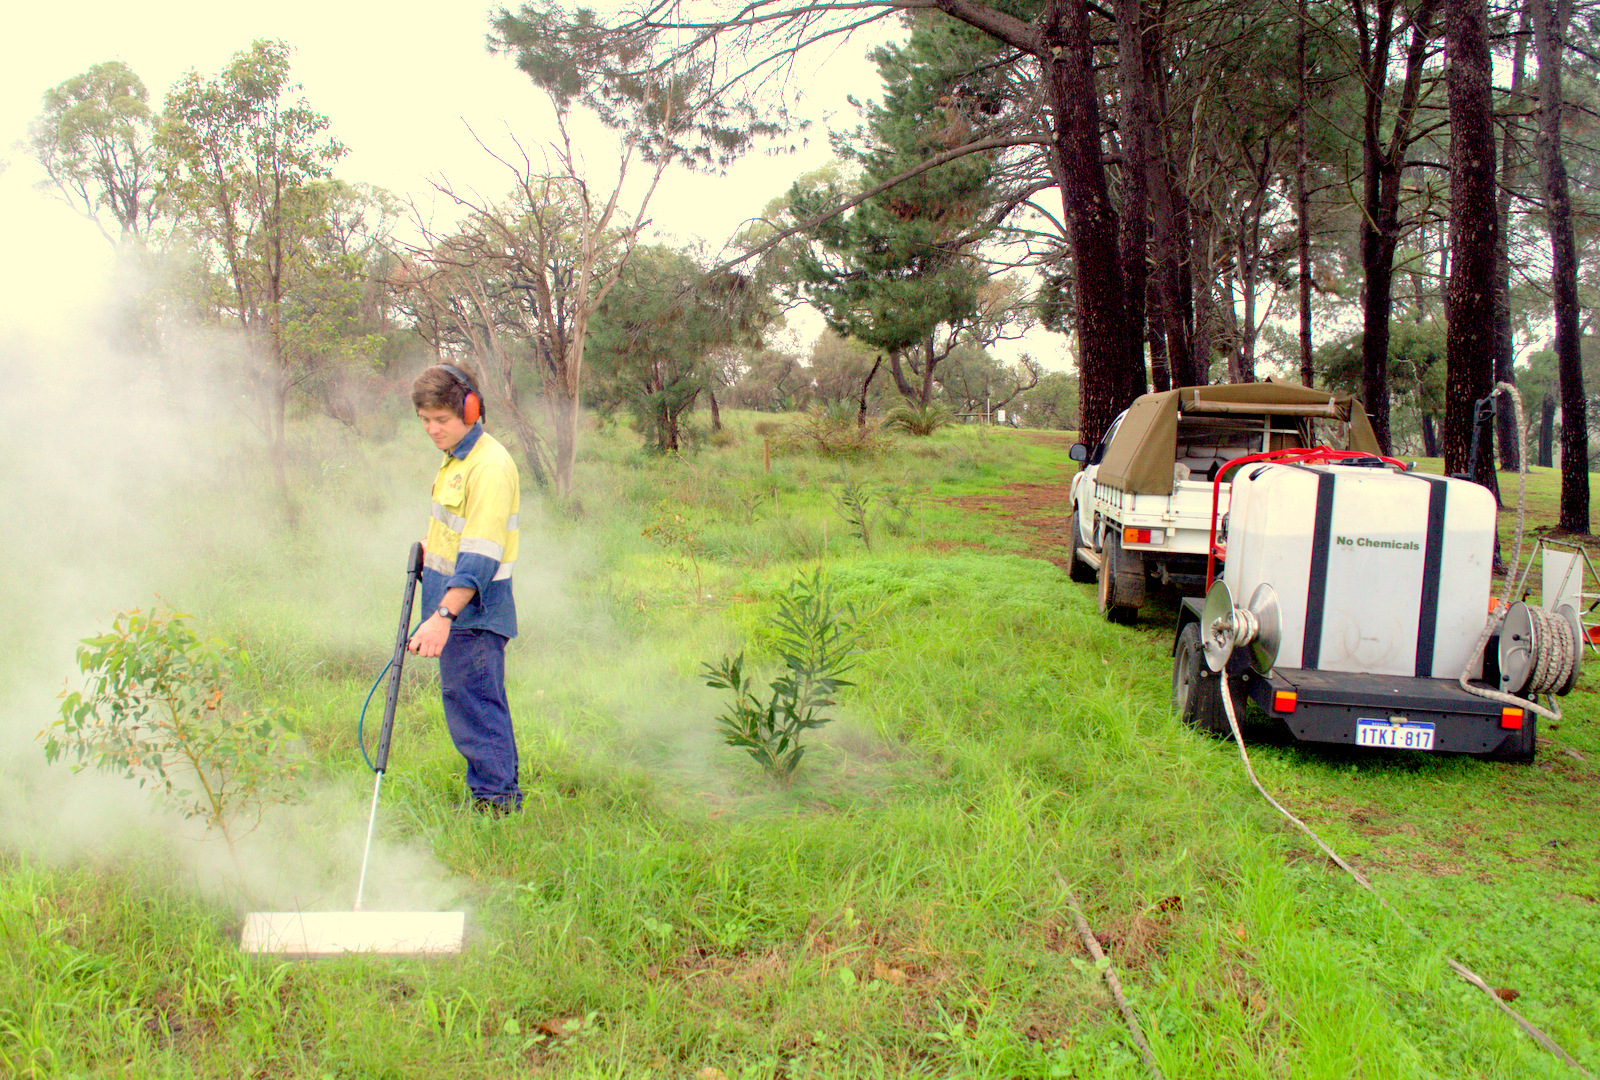 AT THE FOREFRONT OF STEAM WEED CONTROL